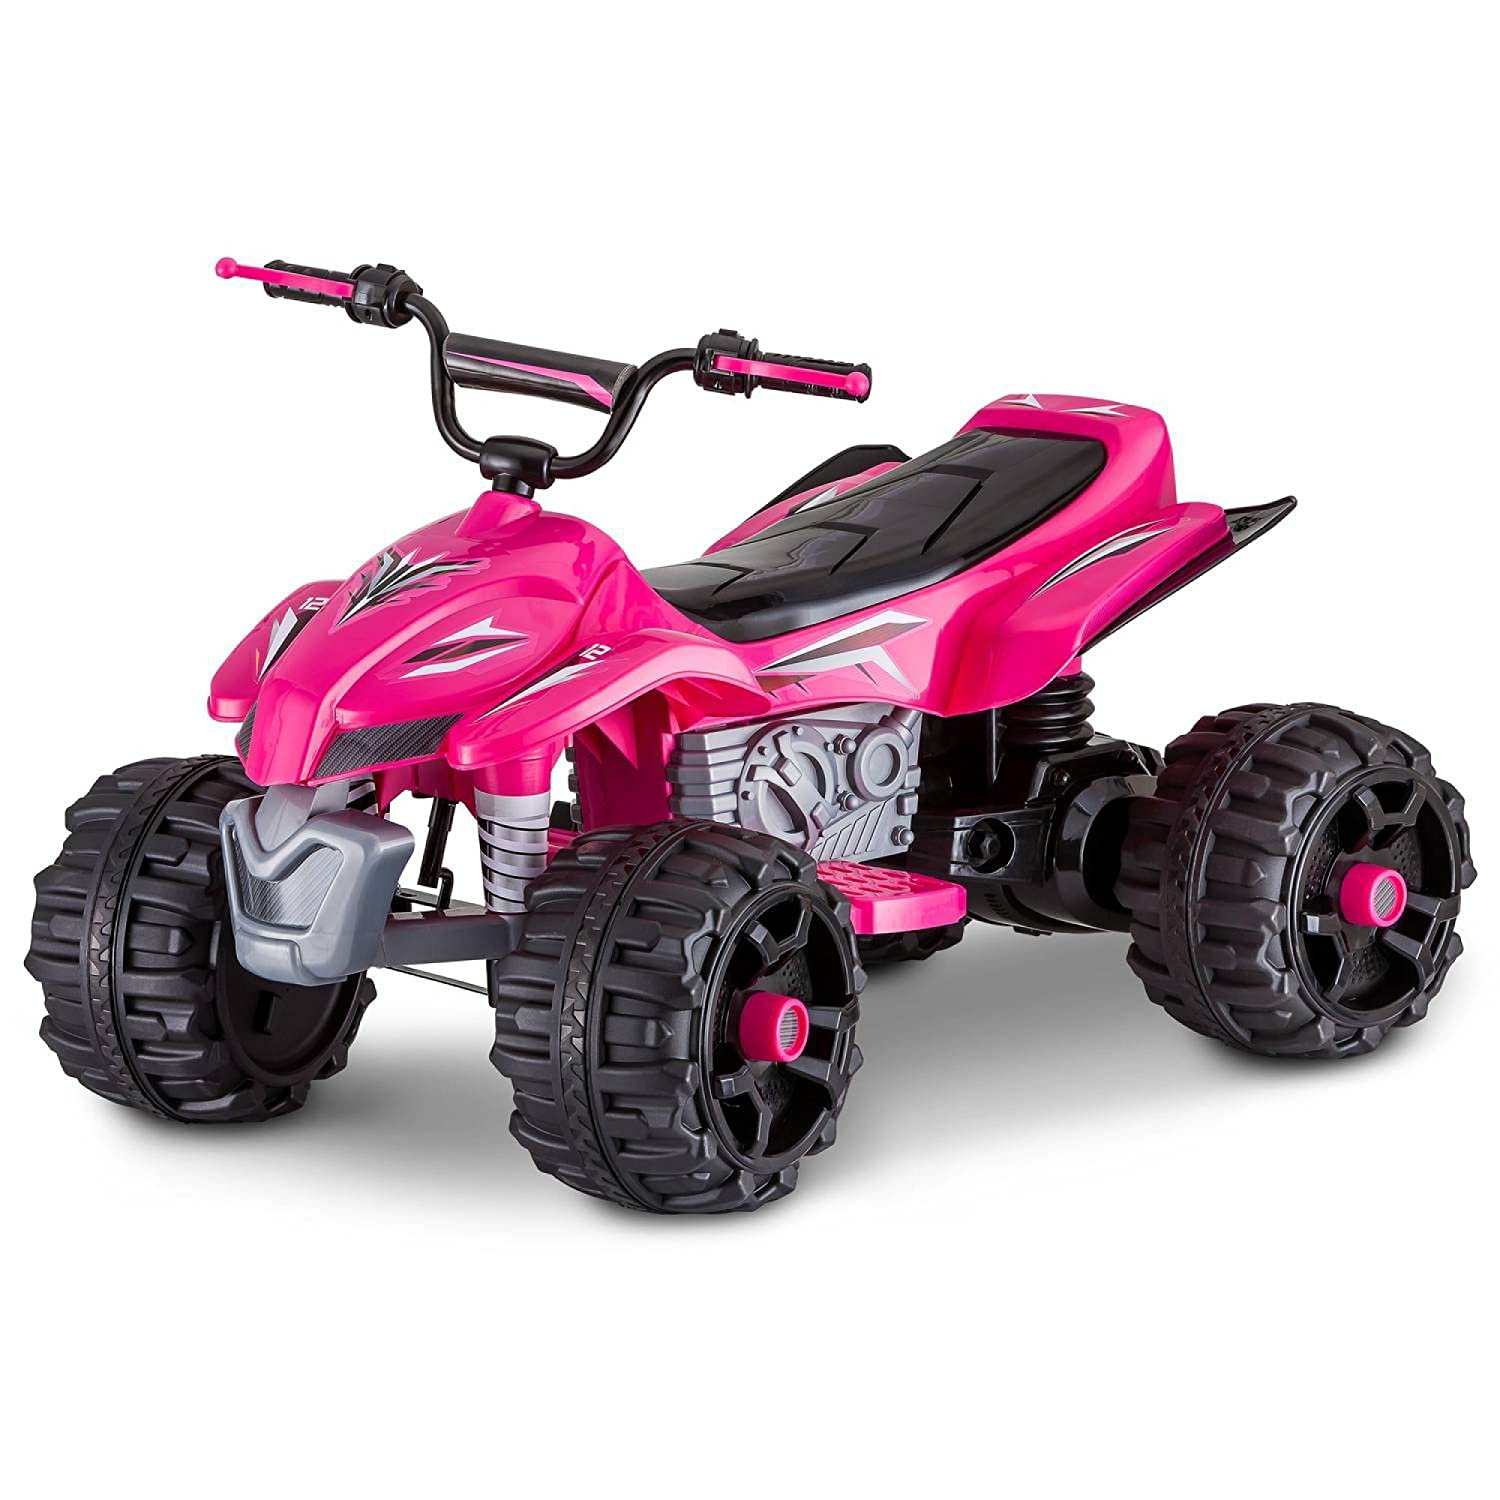 amazoncom sport atv kt1166wmb 12v rechargeable battery powered ride ontop speed of 25 mph pink toys games